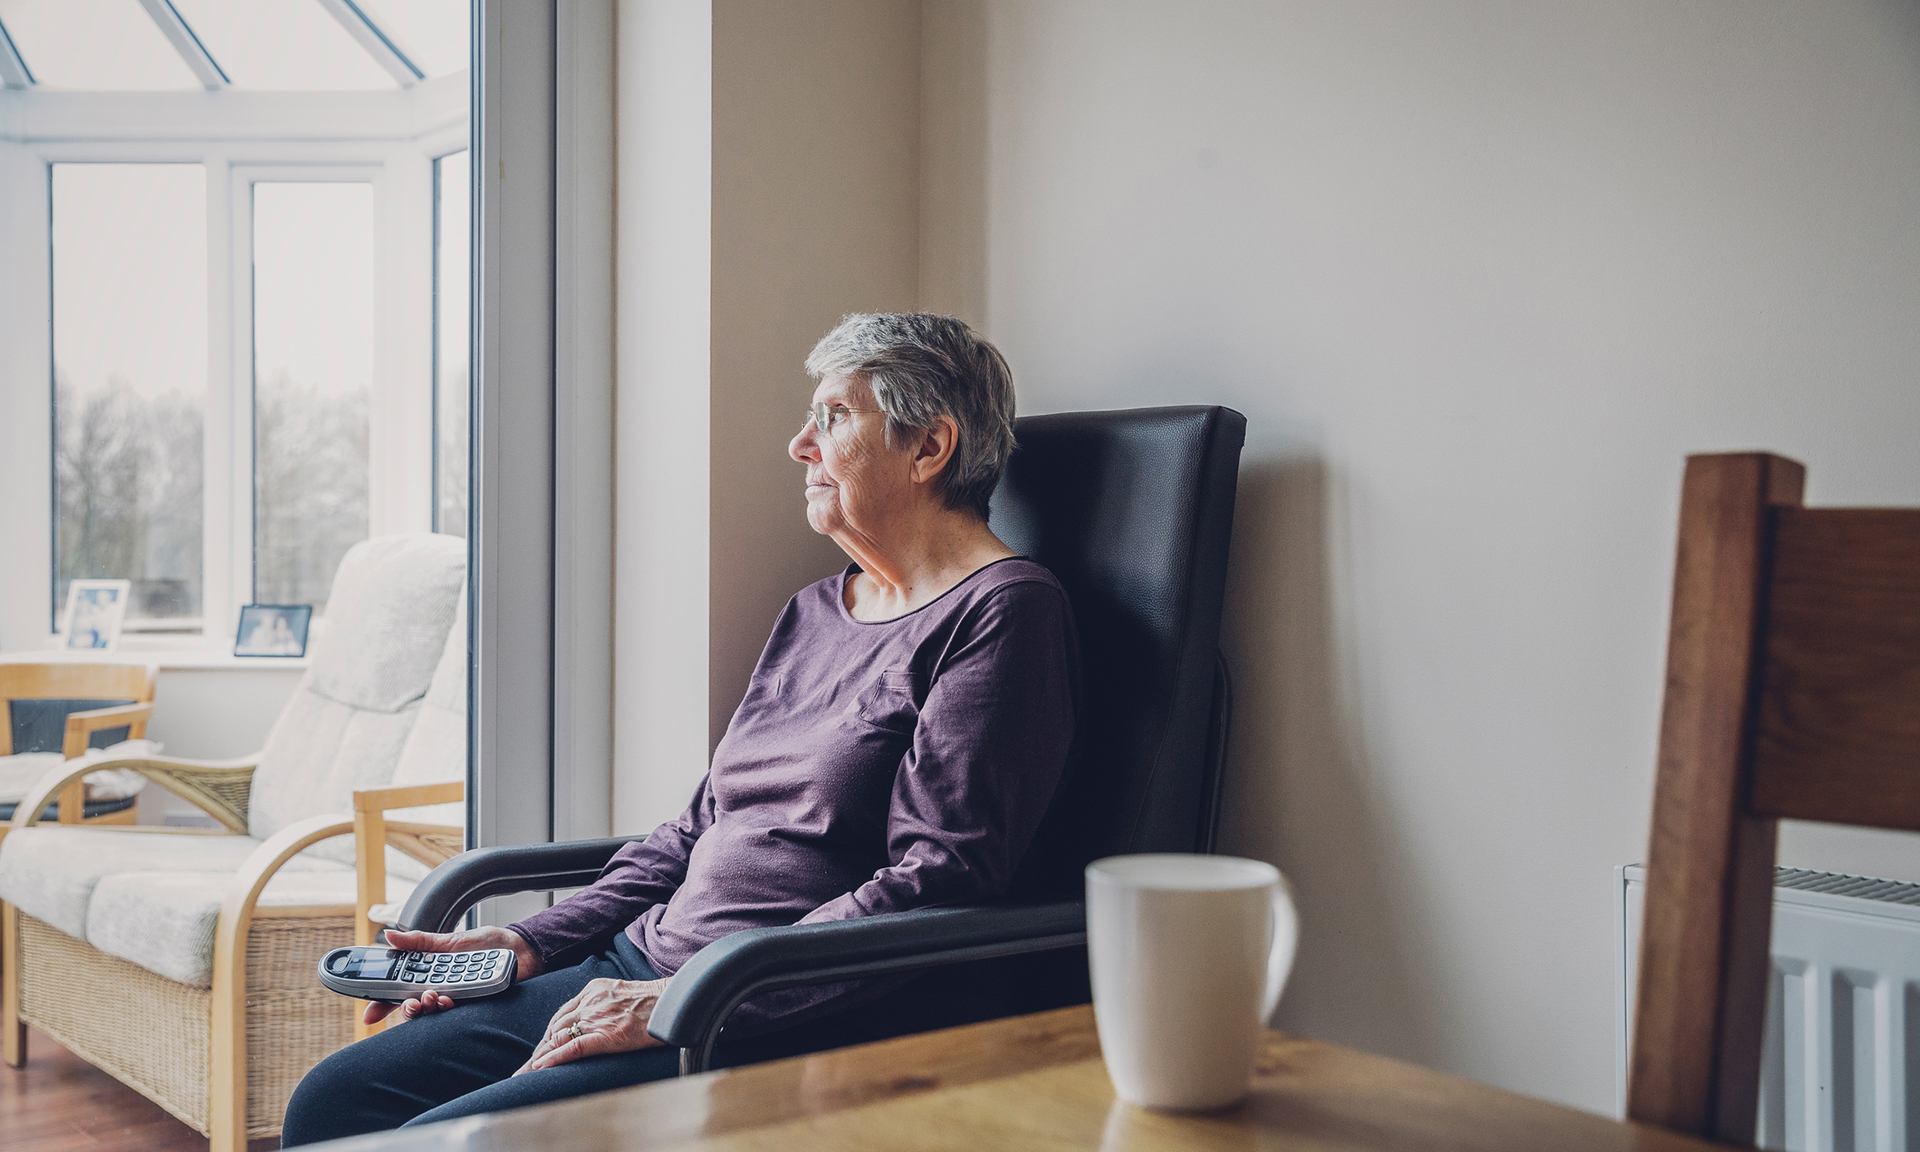 Senior woman sitting alone in her kitchen. She is looking out into her conservatory while holding a home telephone in her hand. Serious expression